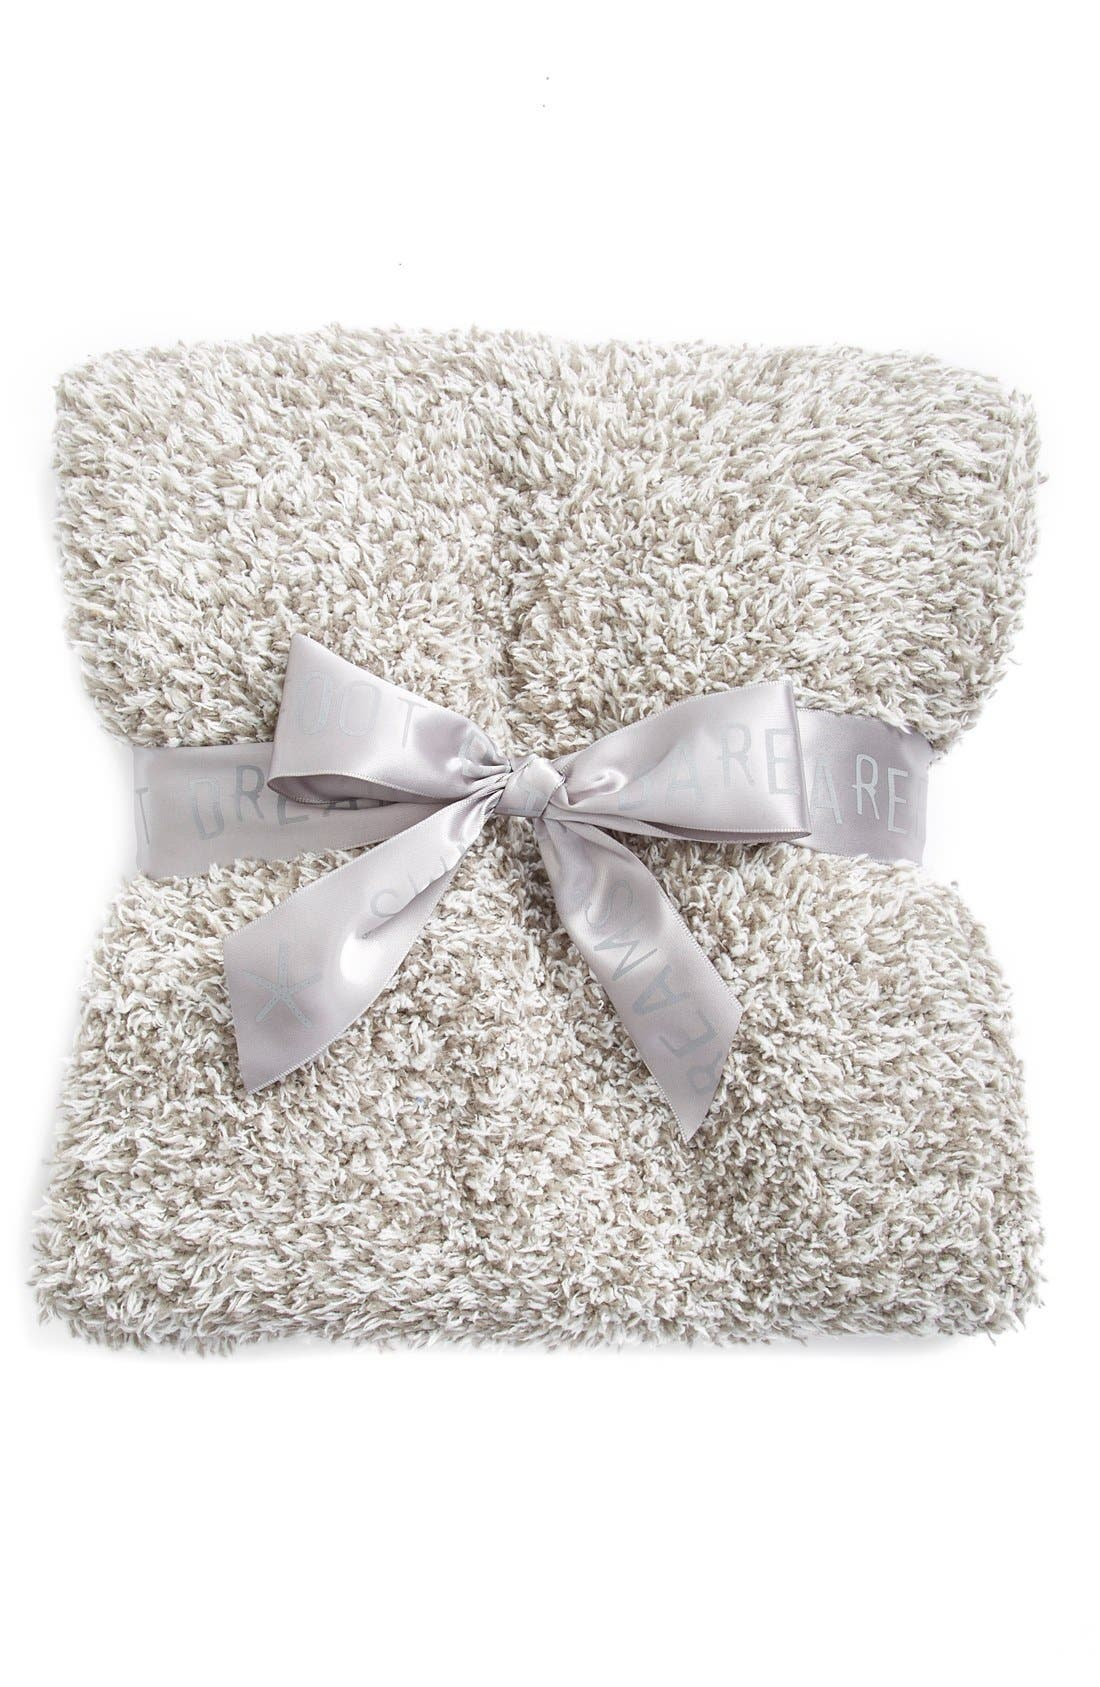 Main Image - Barefoot Dreams® CozyChic® Heathered Blanket (Baby)(Nordstrom Exclusive)